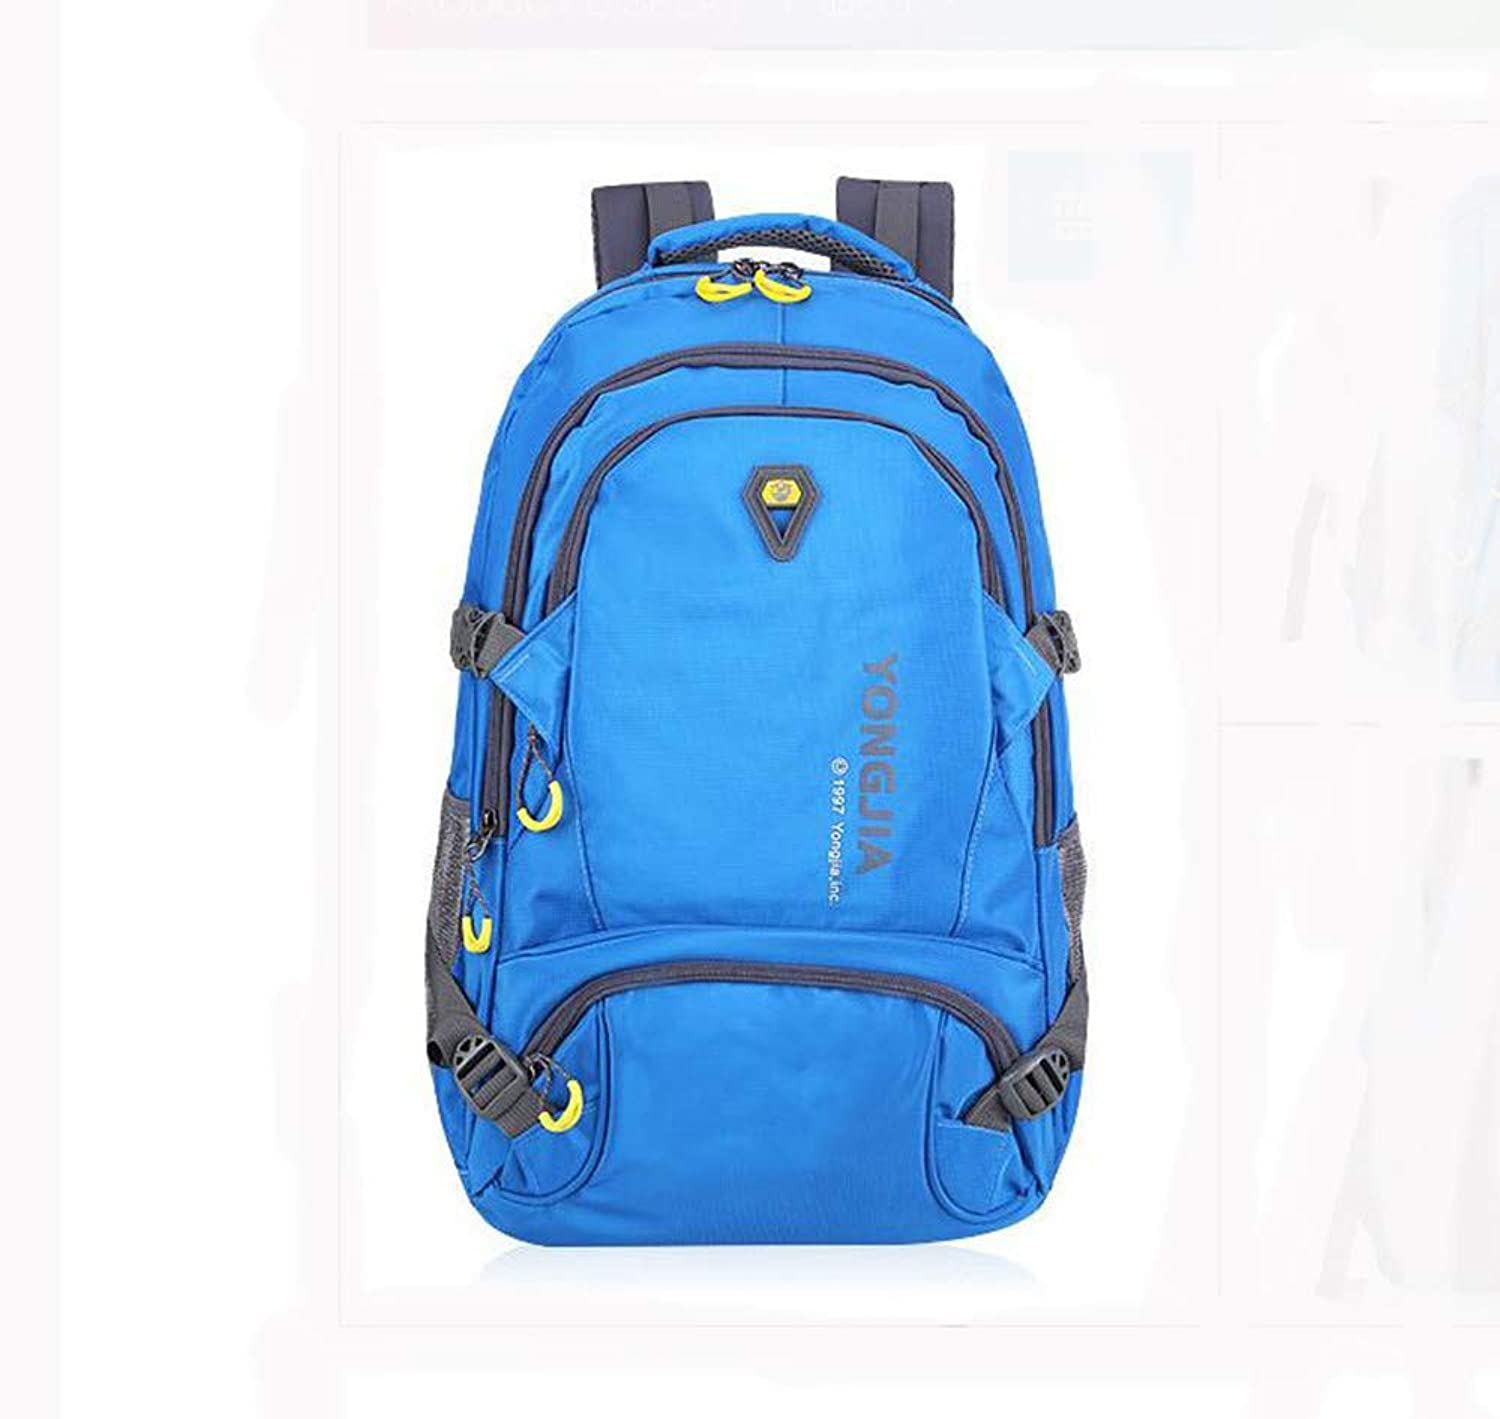 Backpack Hiking Backpack Outdoor Travel Sports and Leisure Student Bag